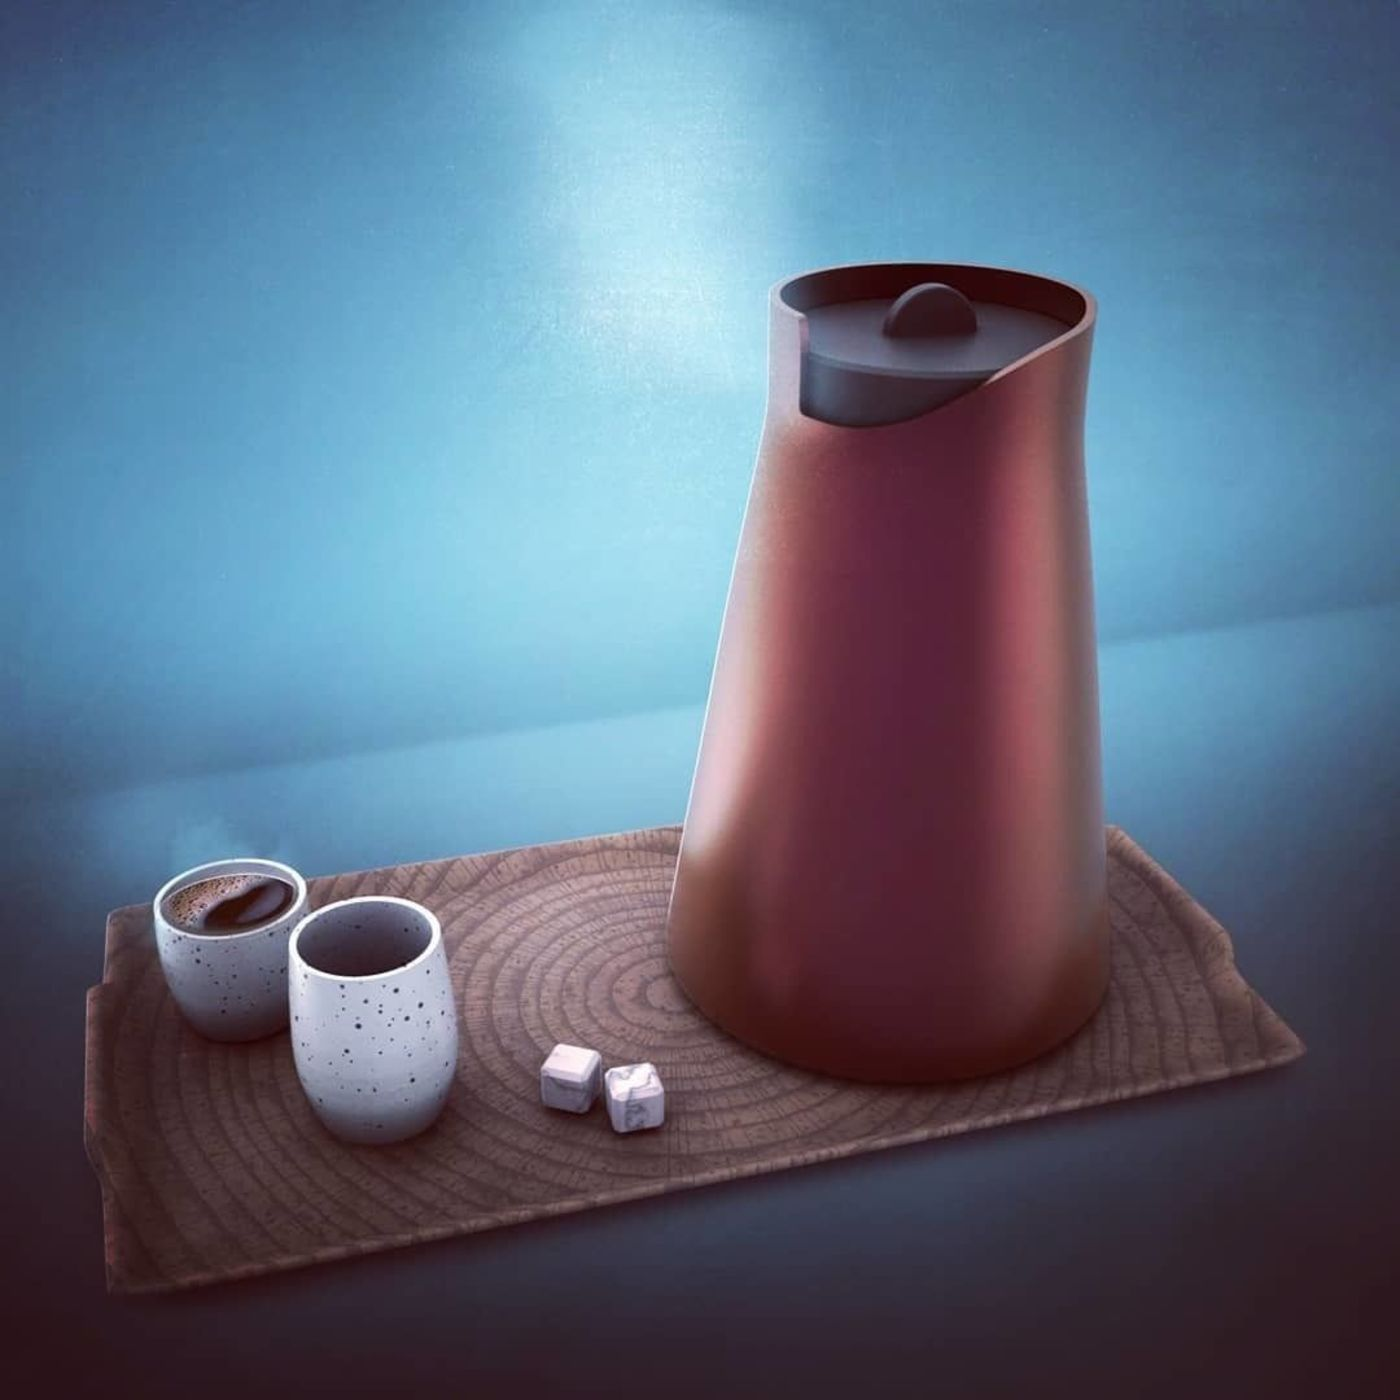 Product Design Modeling and Rendering | Industrial Design